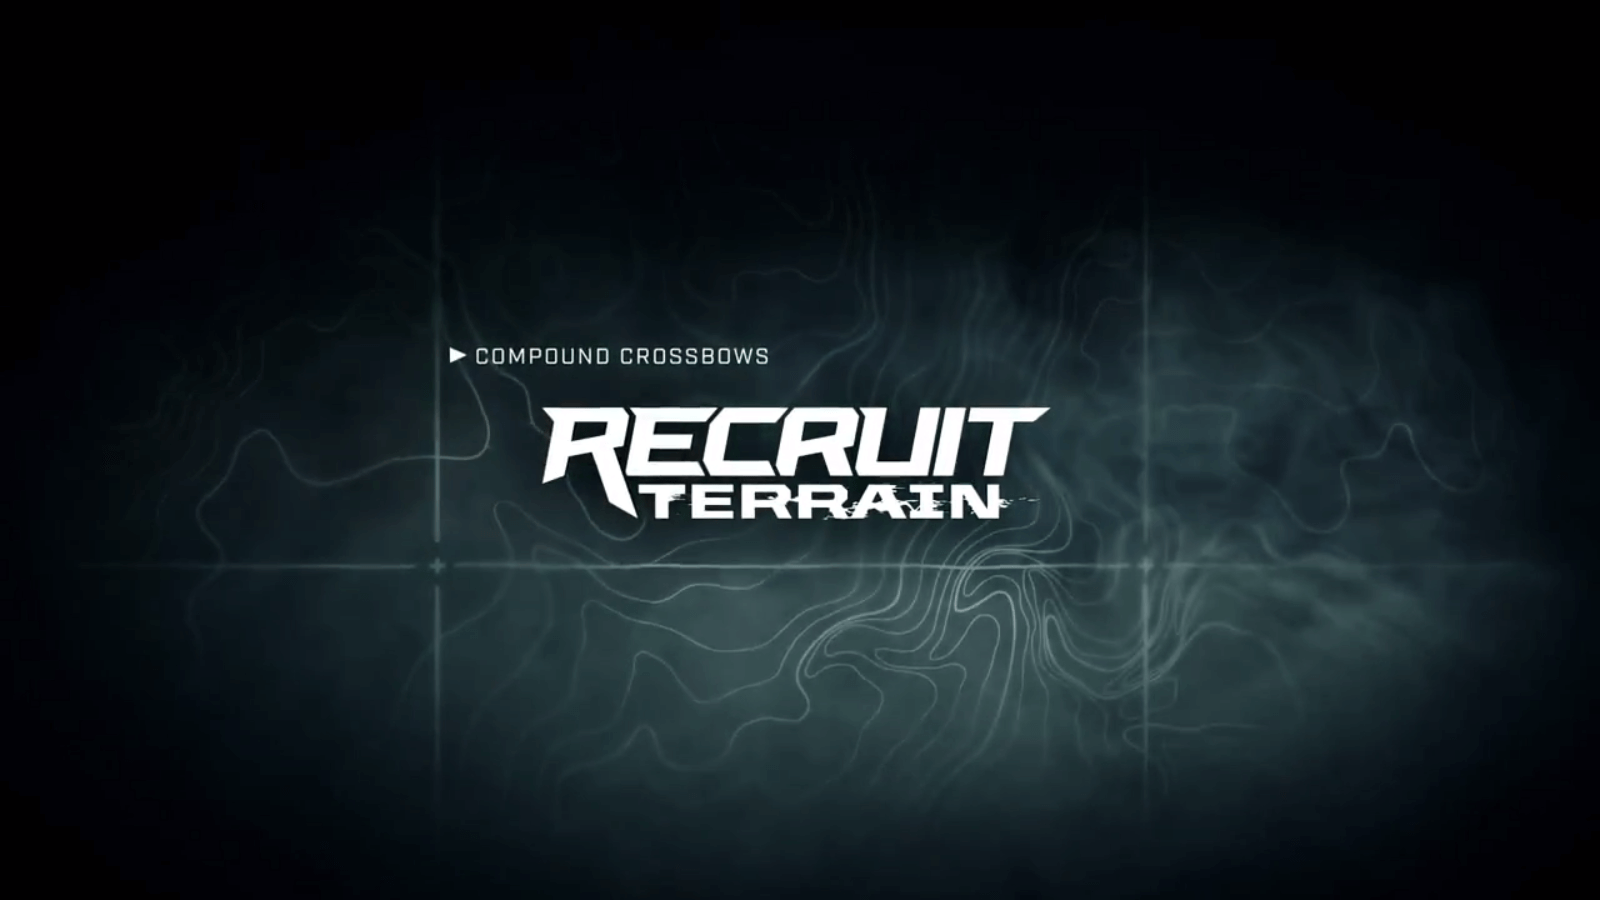 Recruit Terrain